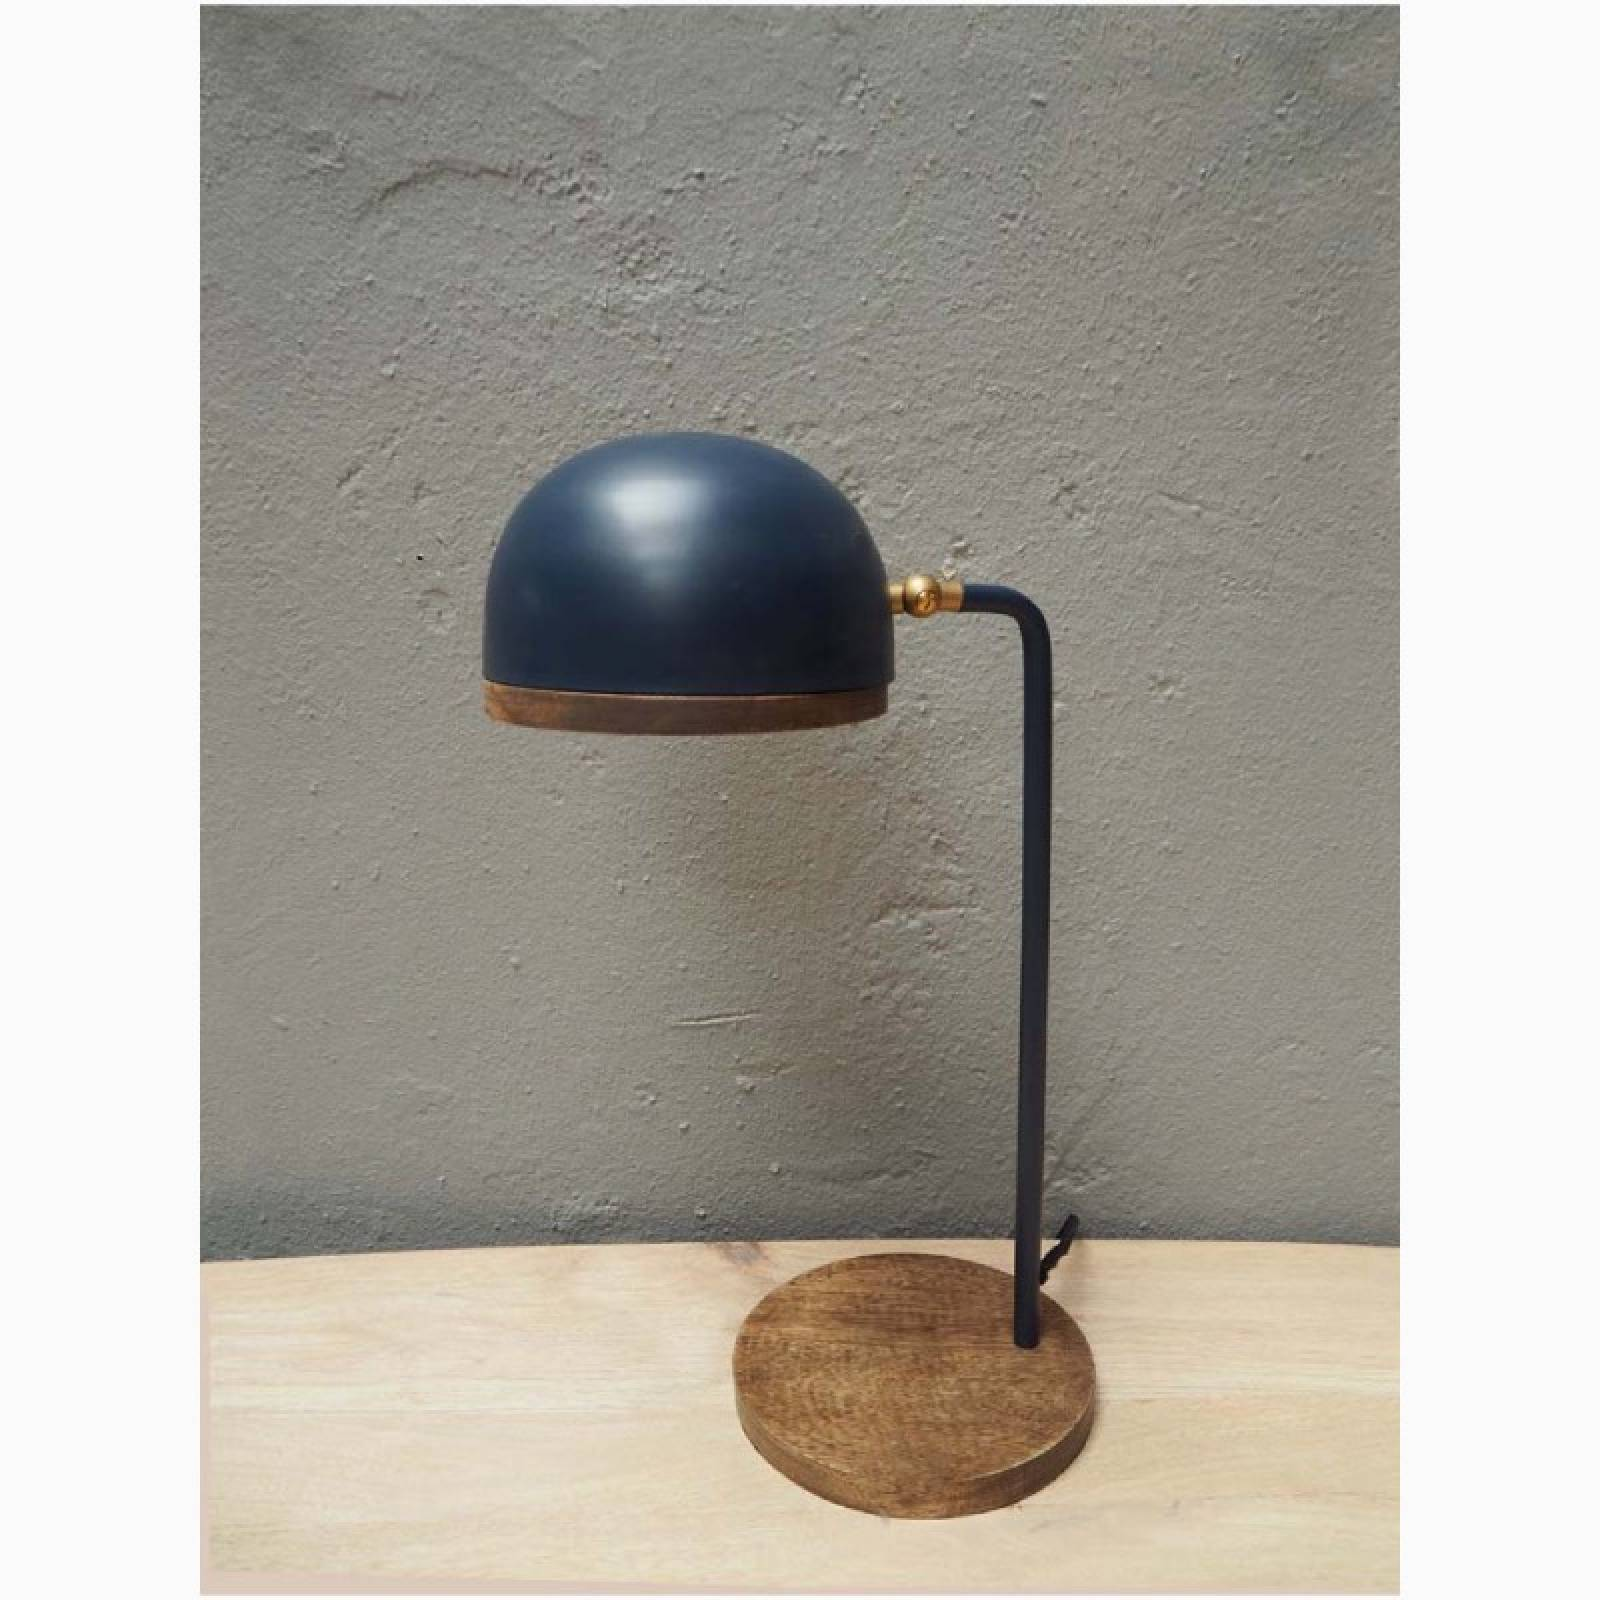 Blue Metal Table Lamp With Wooden Base H:48cm thumbnails